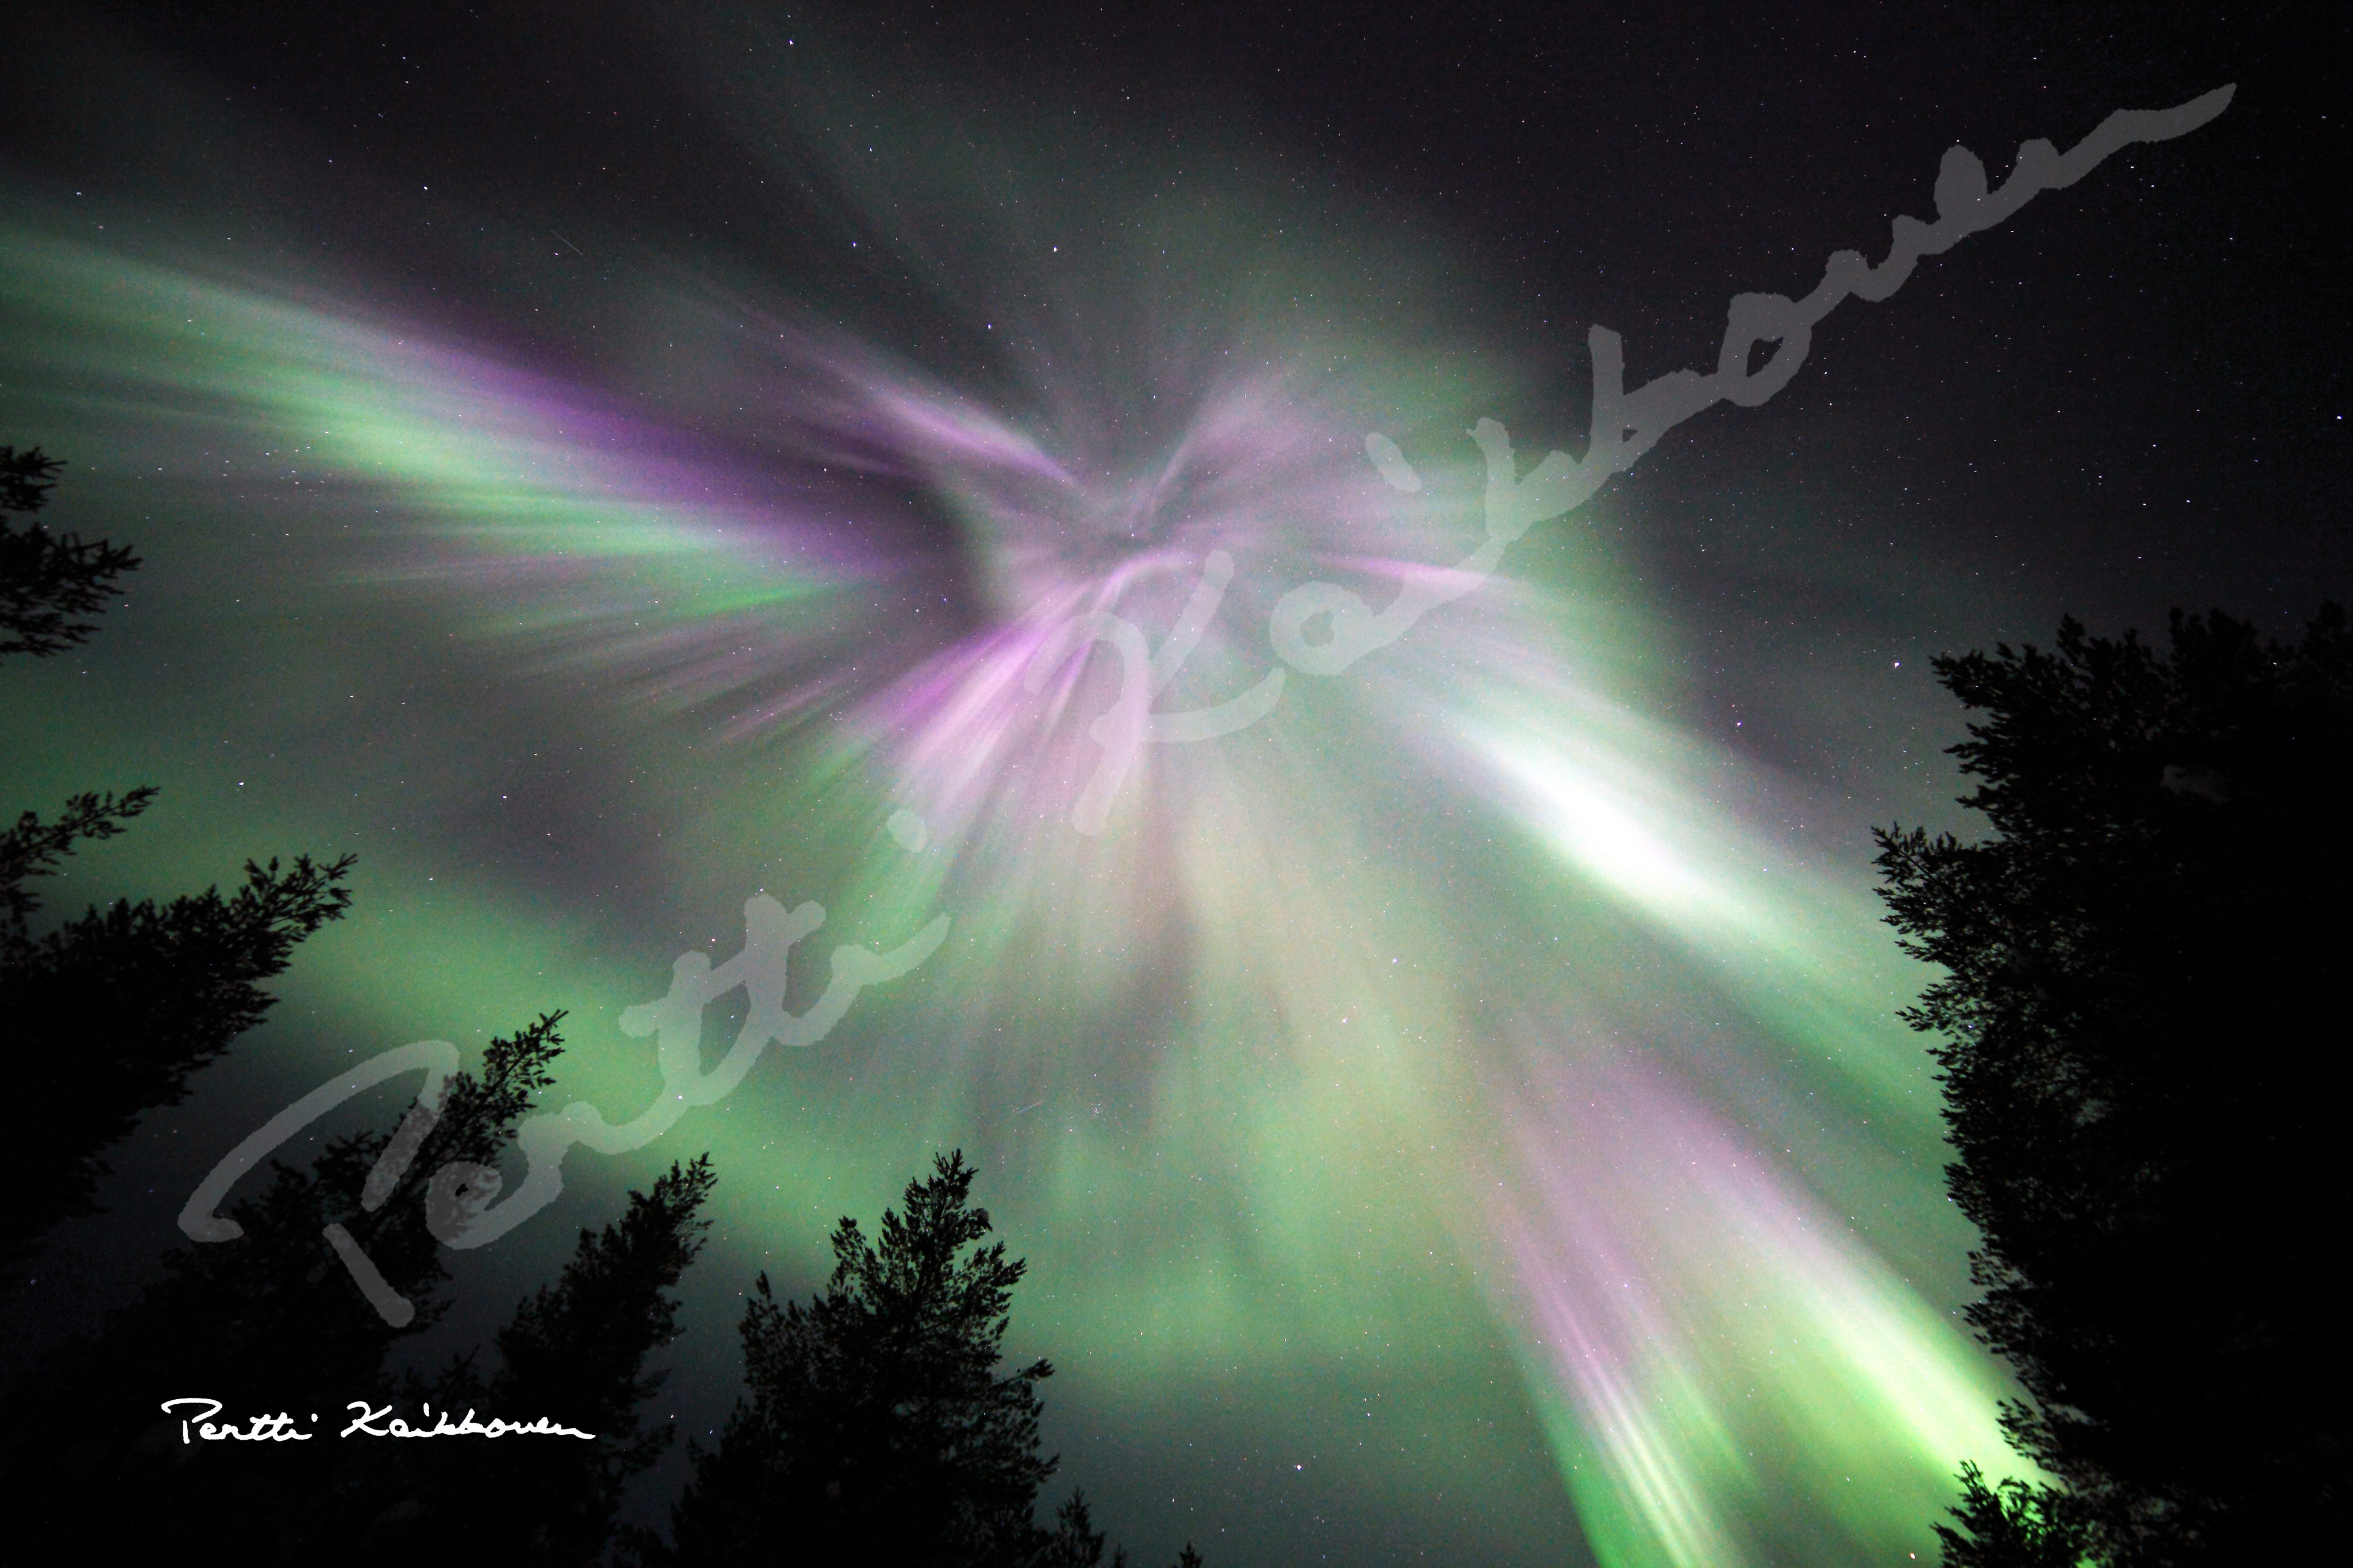 01. Revontulia - Aurora Borealis, kuvatiedostot - digital picture files